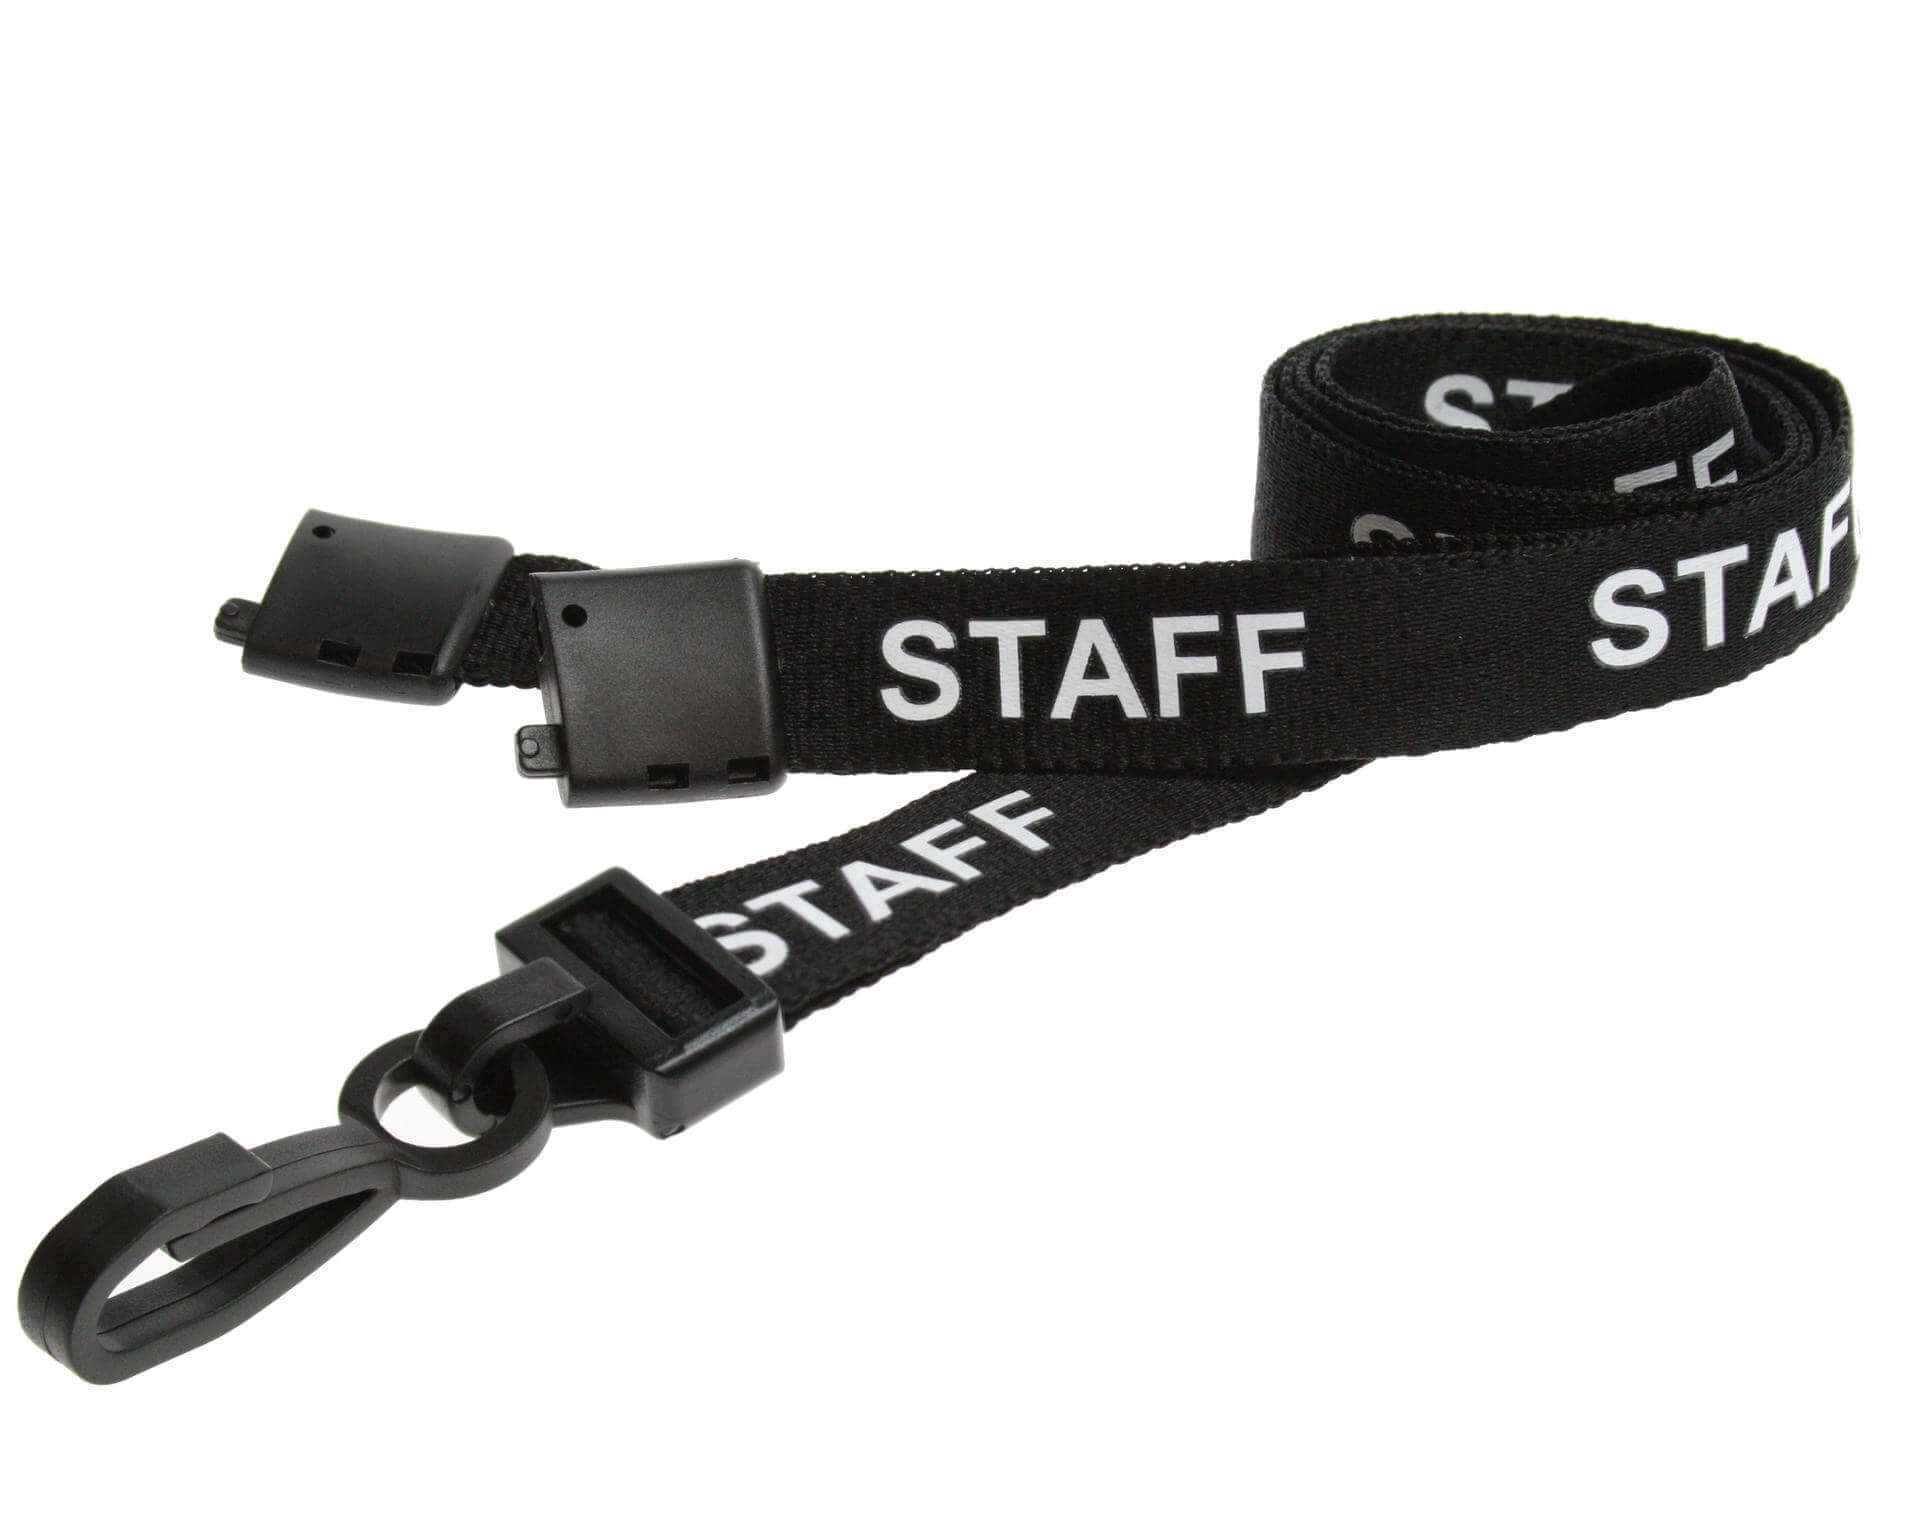 12 BLACK SECURITY LANYARDS WITH PLASTIC J CLIP